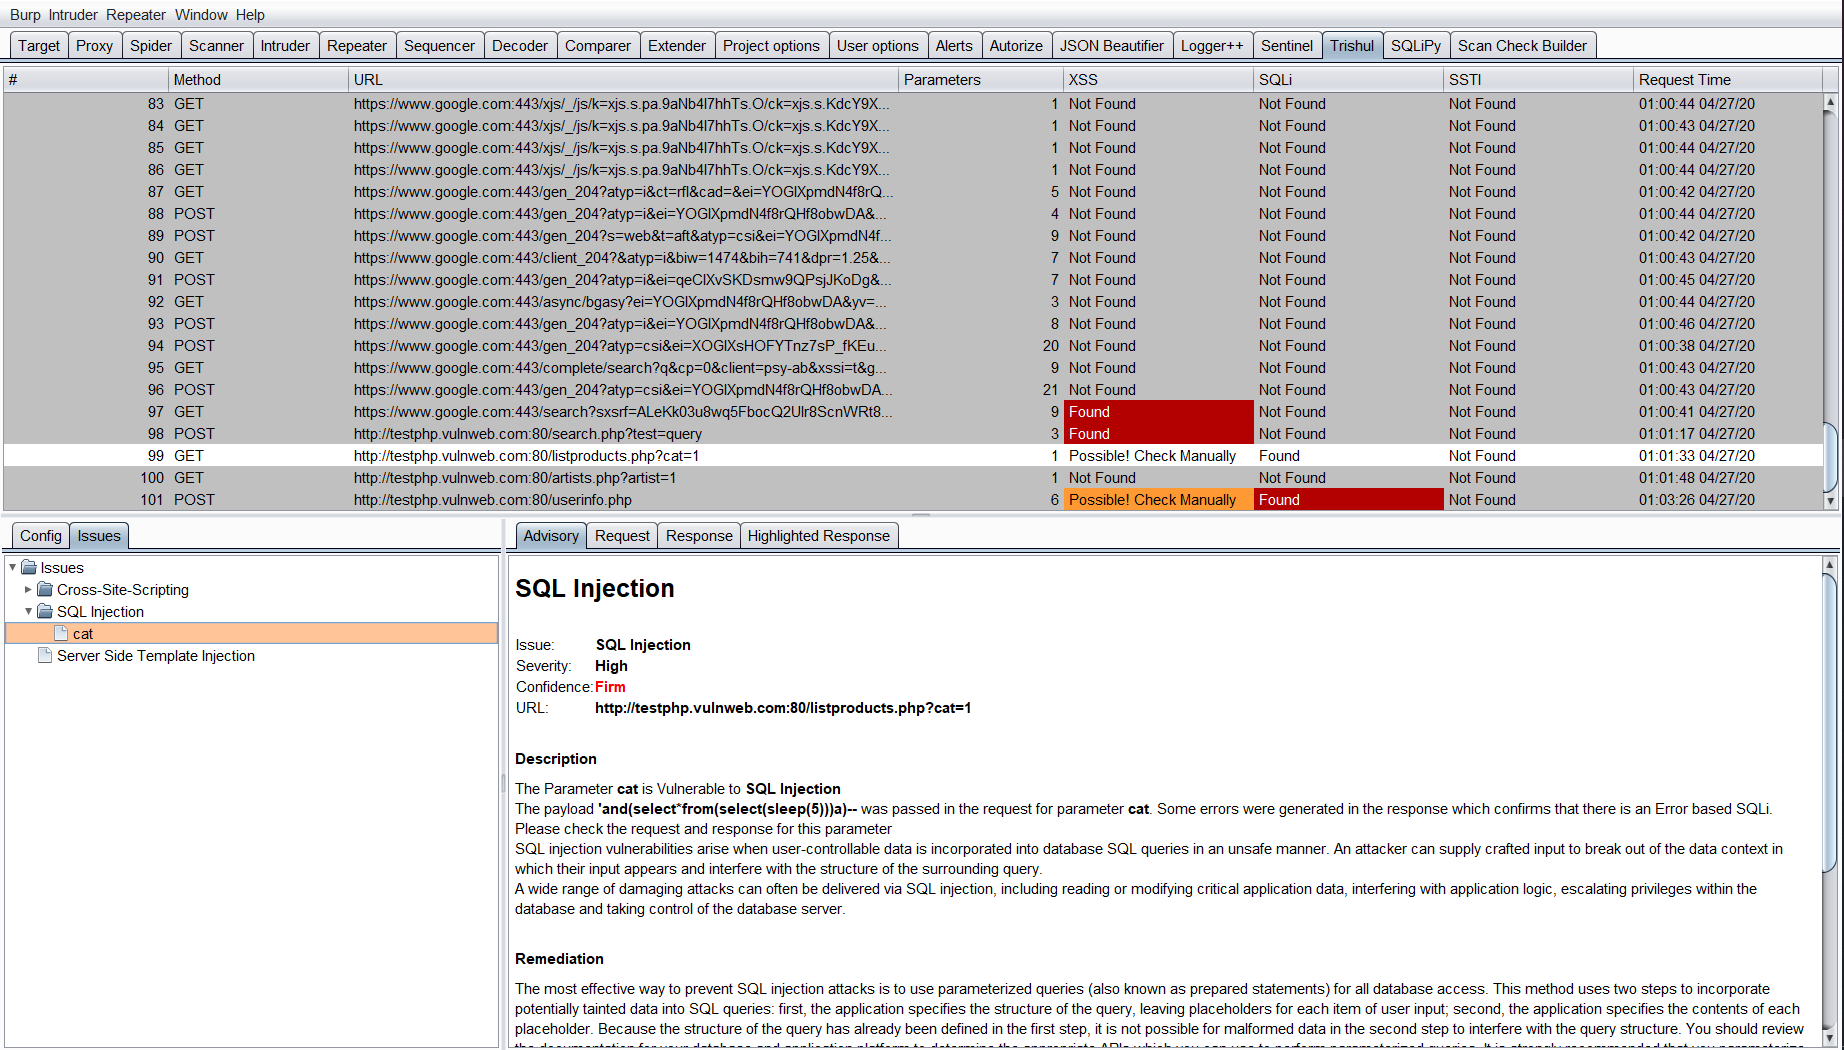 Trishul: Burp Extension for Automated Vulnerability Discovery